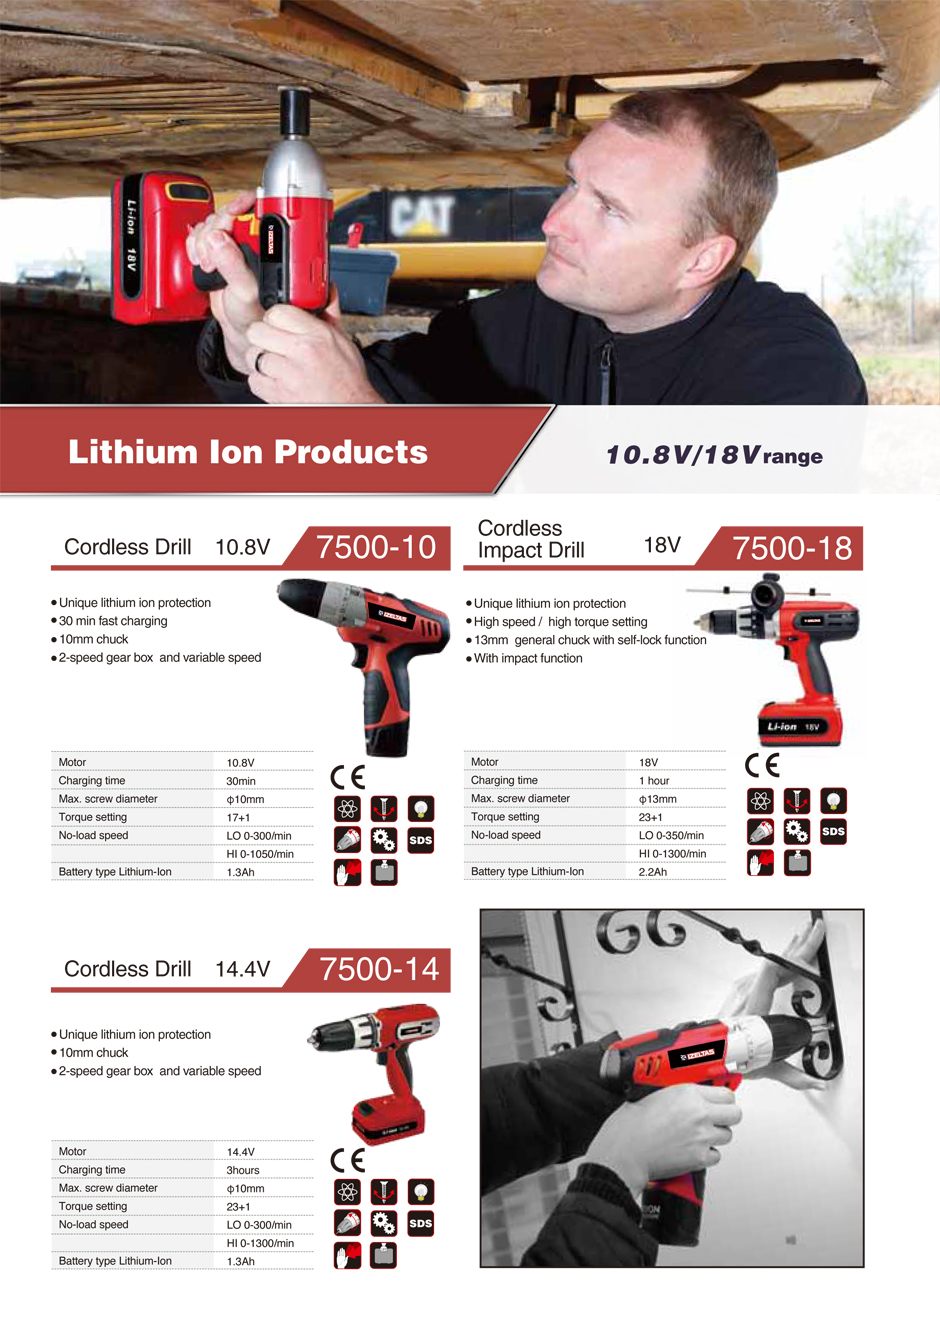 Lithium Ion Products